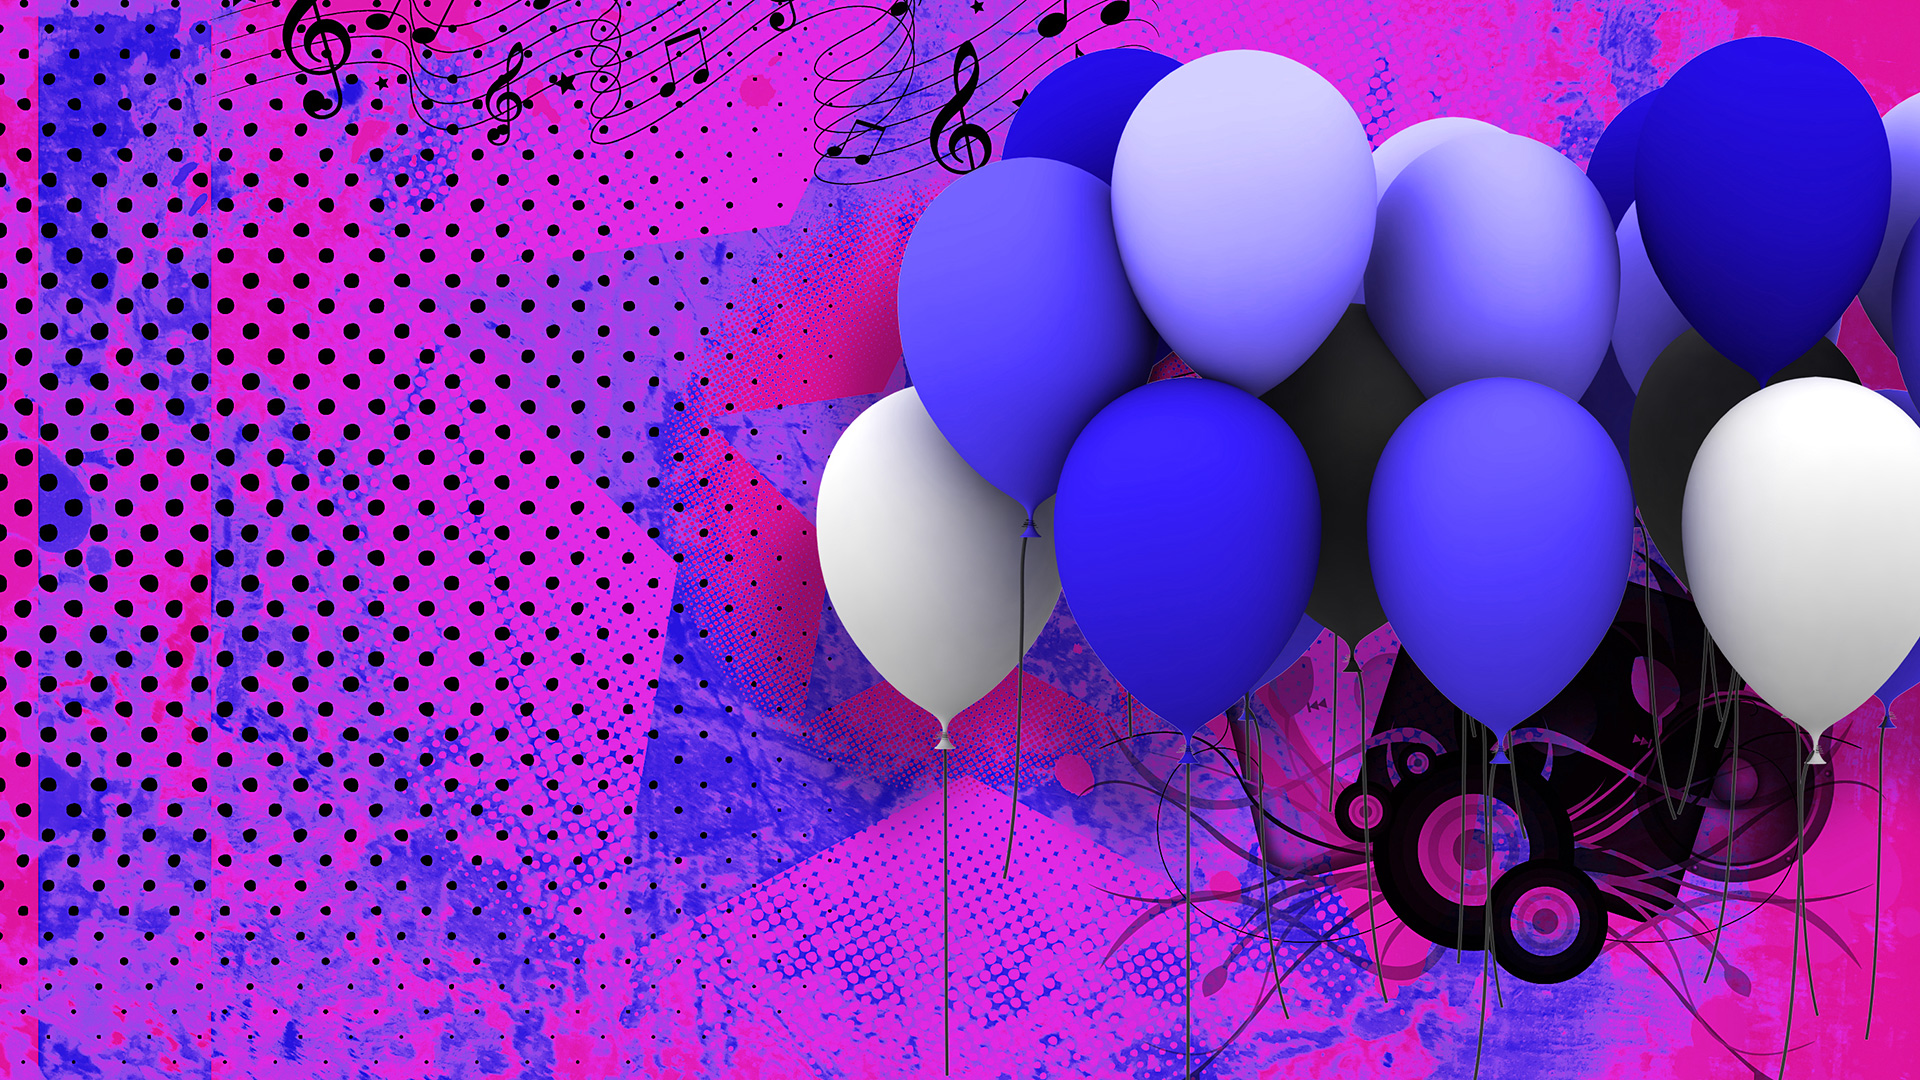 Purple and Blue themed Balloon Background for presentations